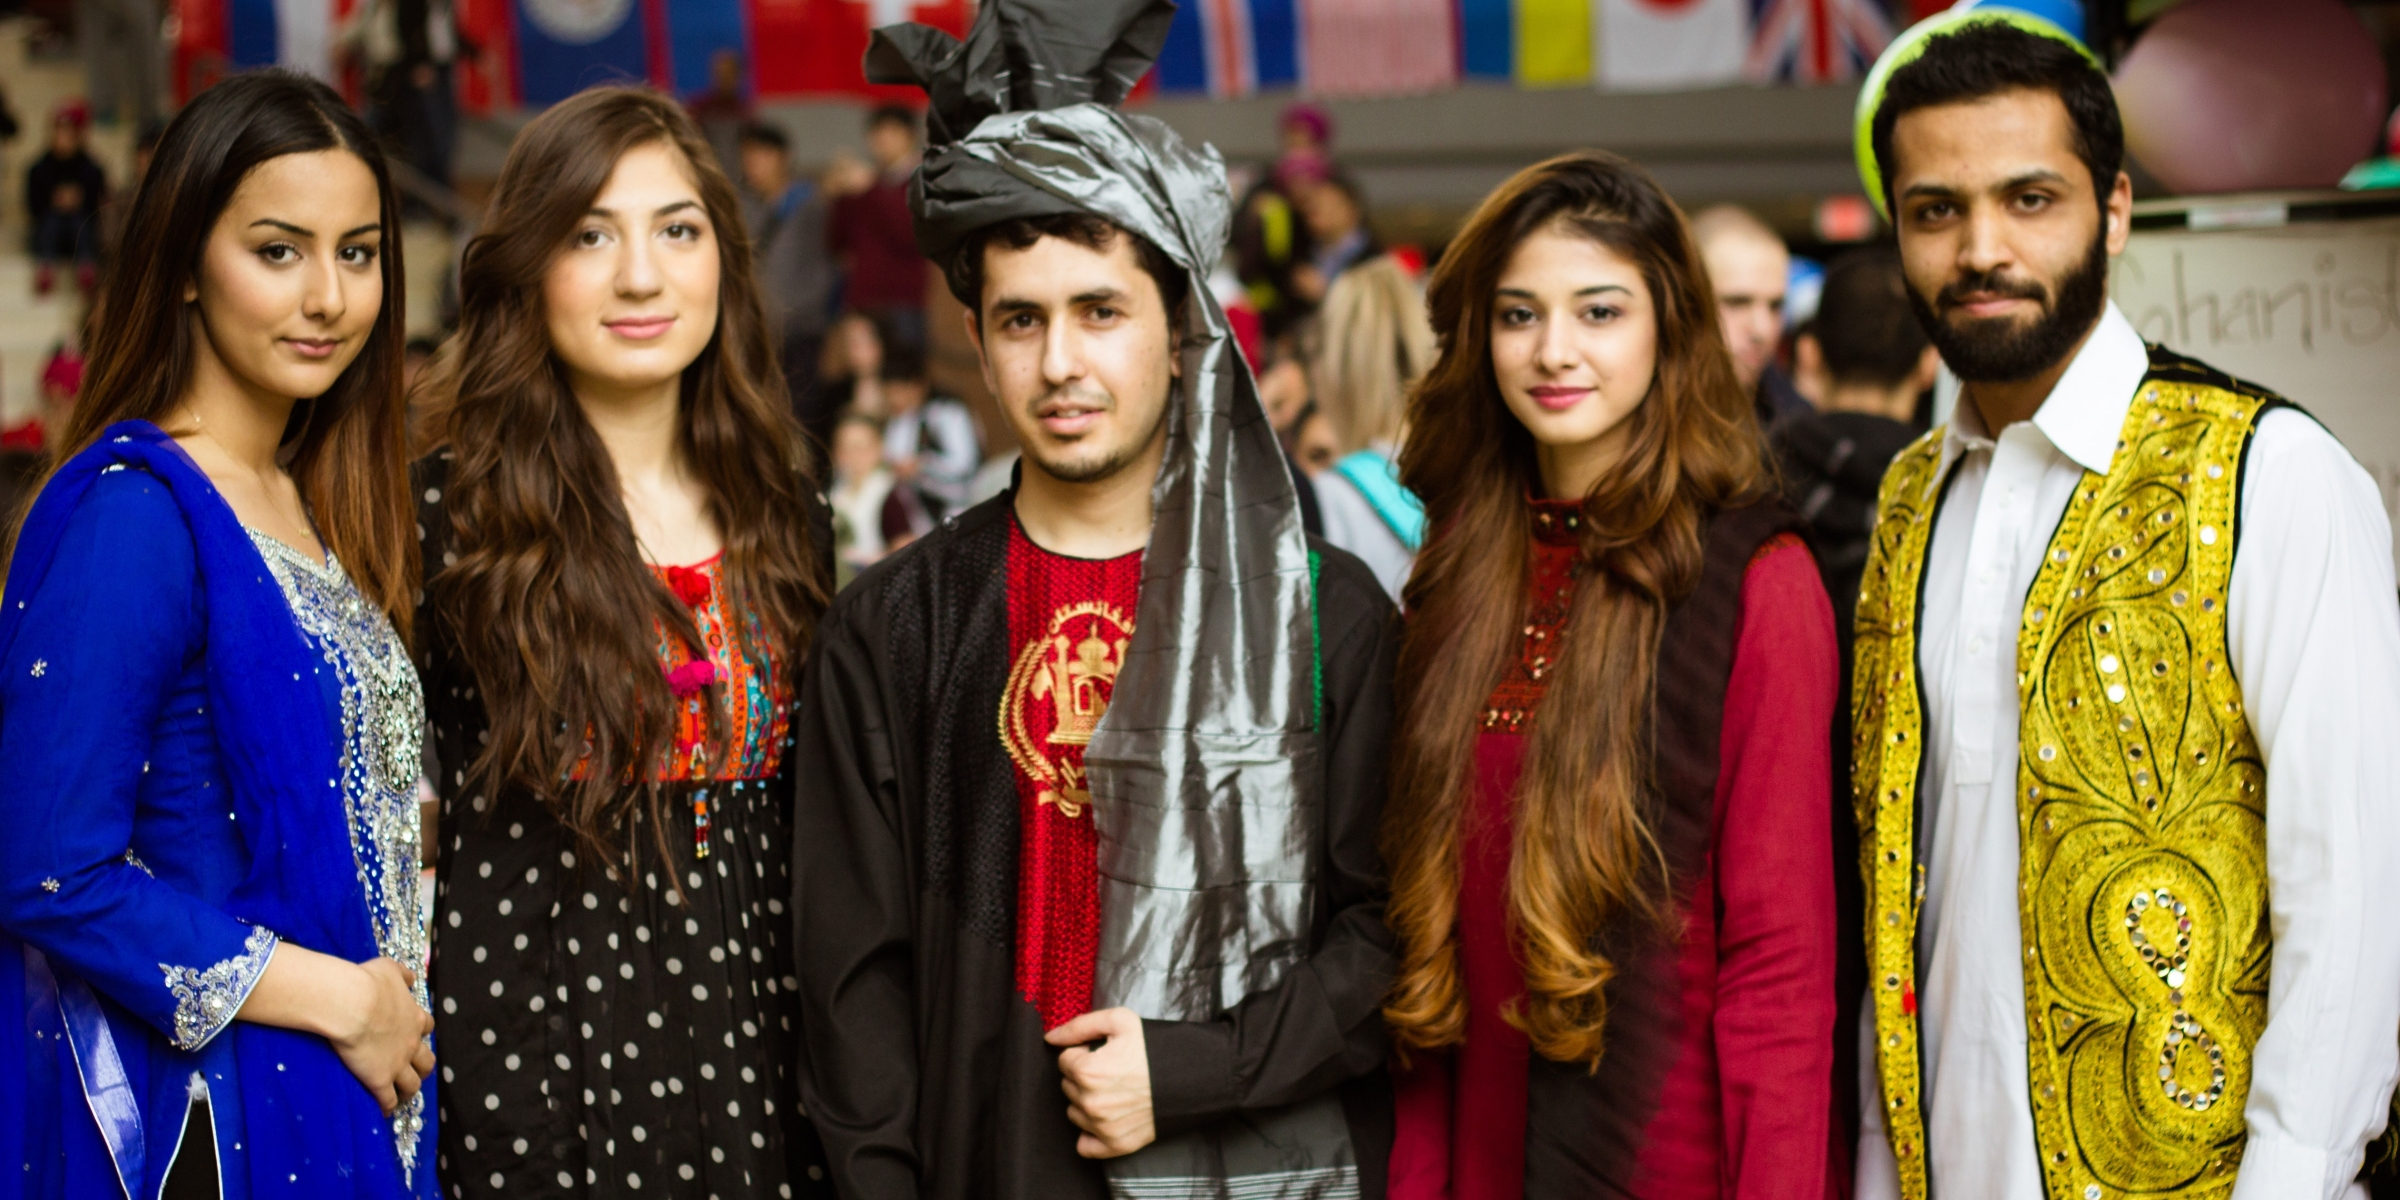 Students dressed in traditional clothing of their home country at International Days